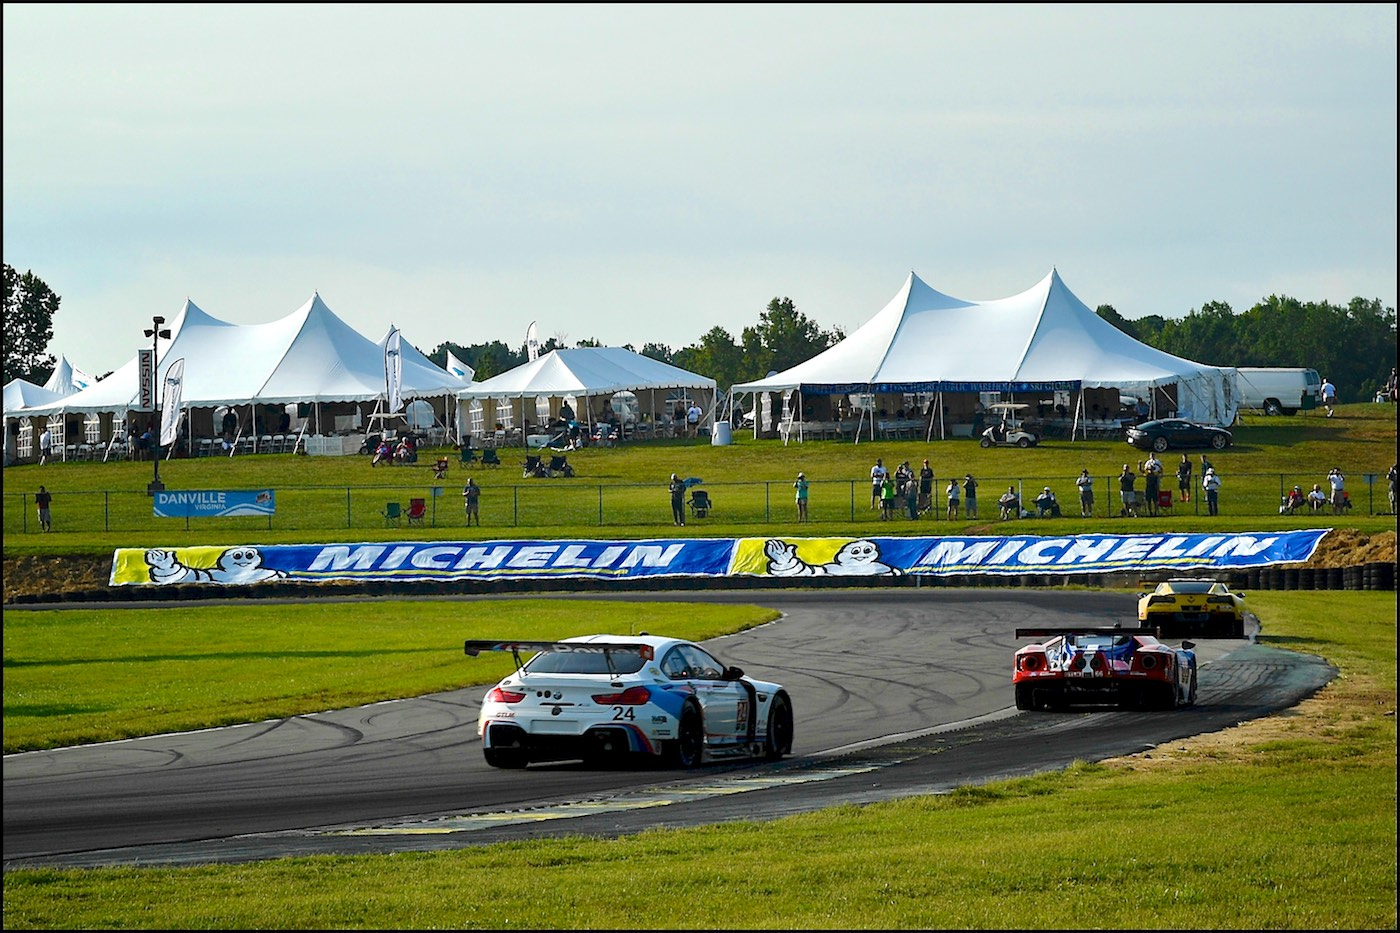 michelin team up with vir